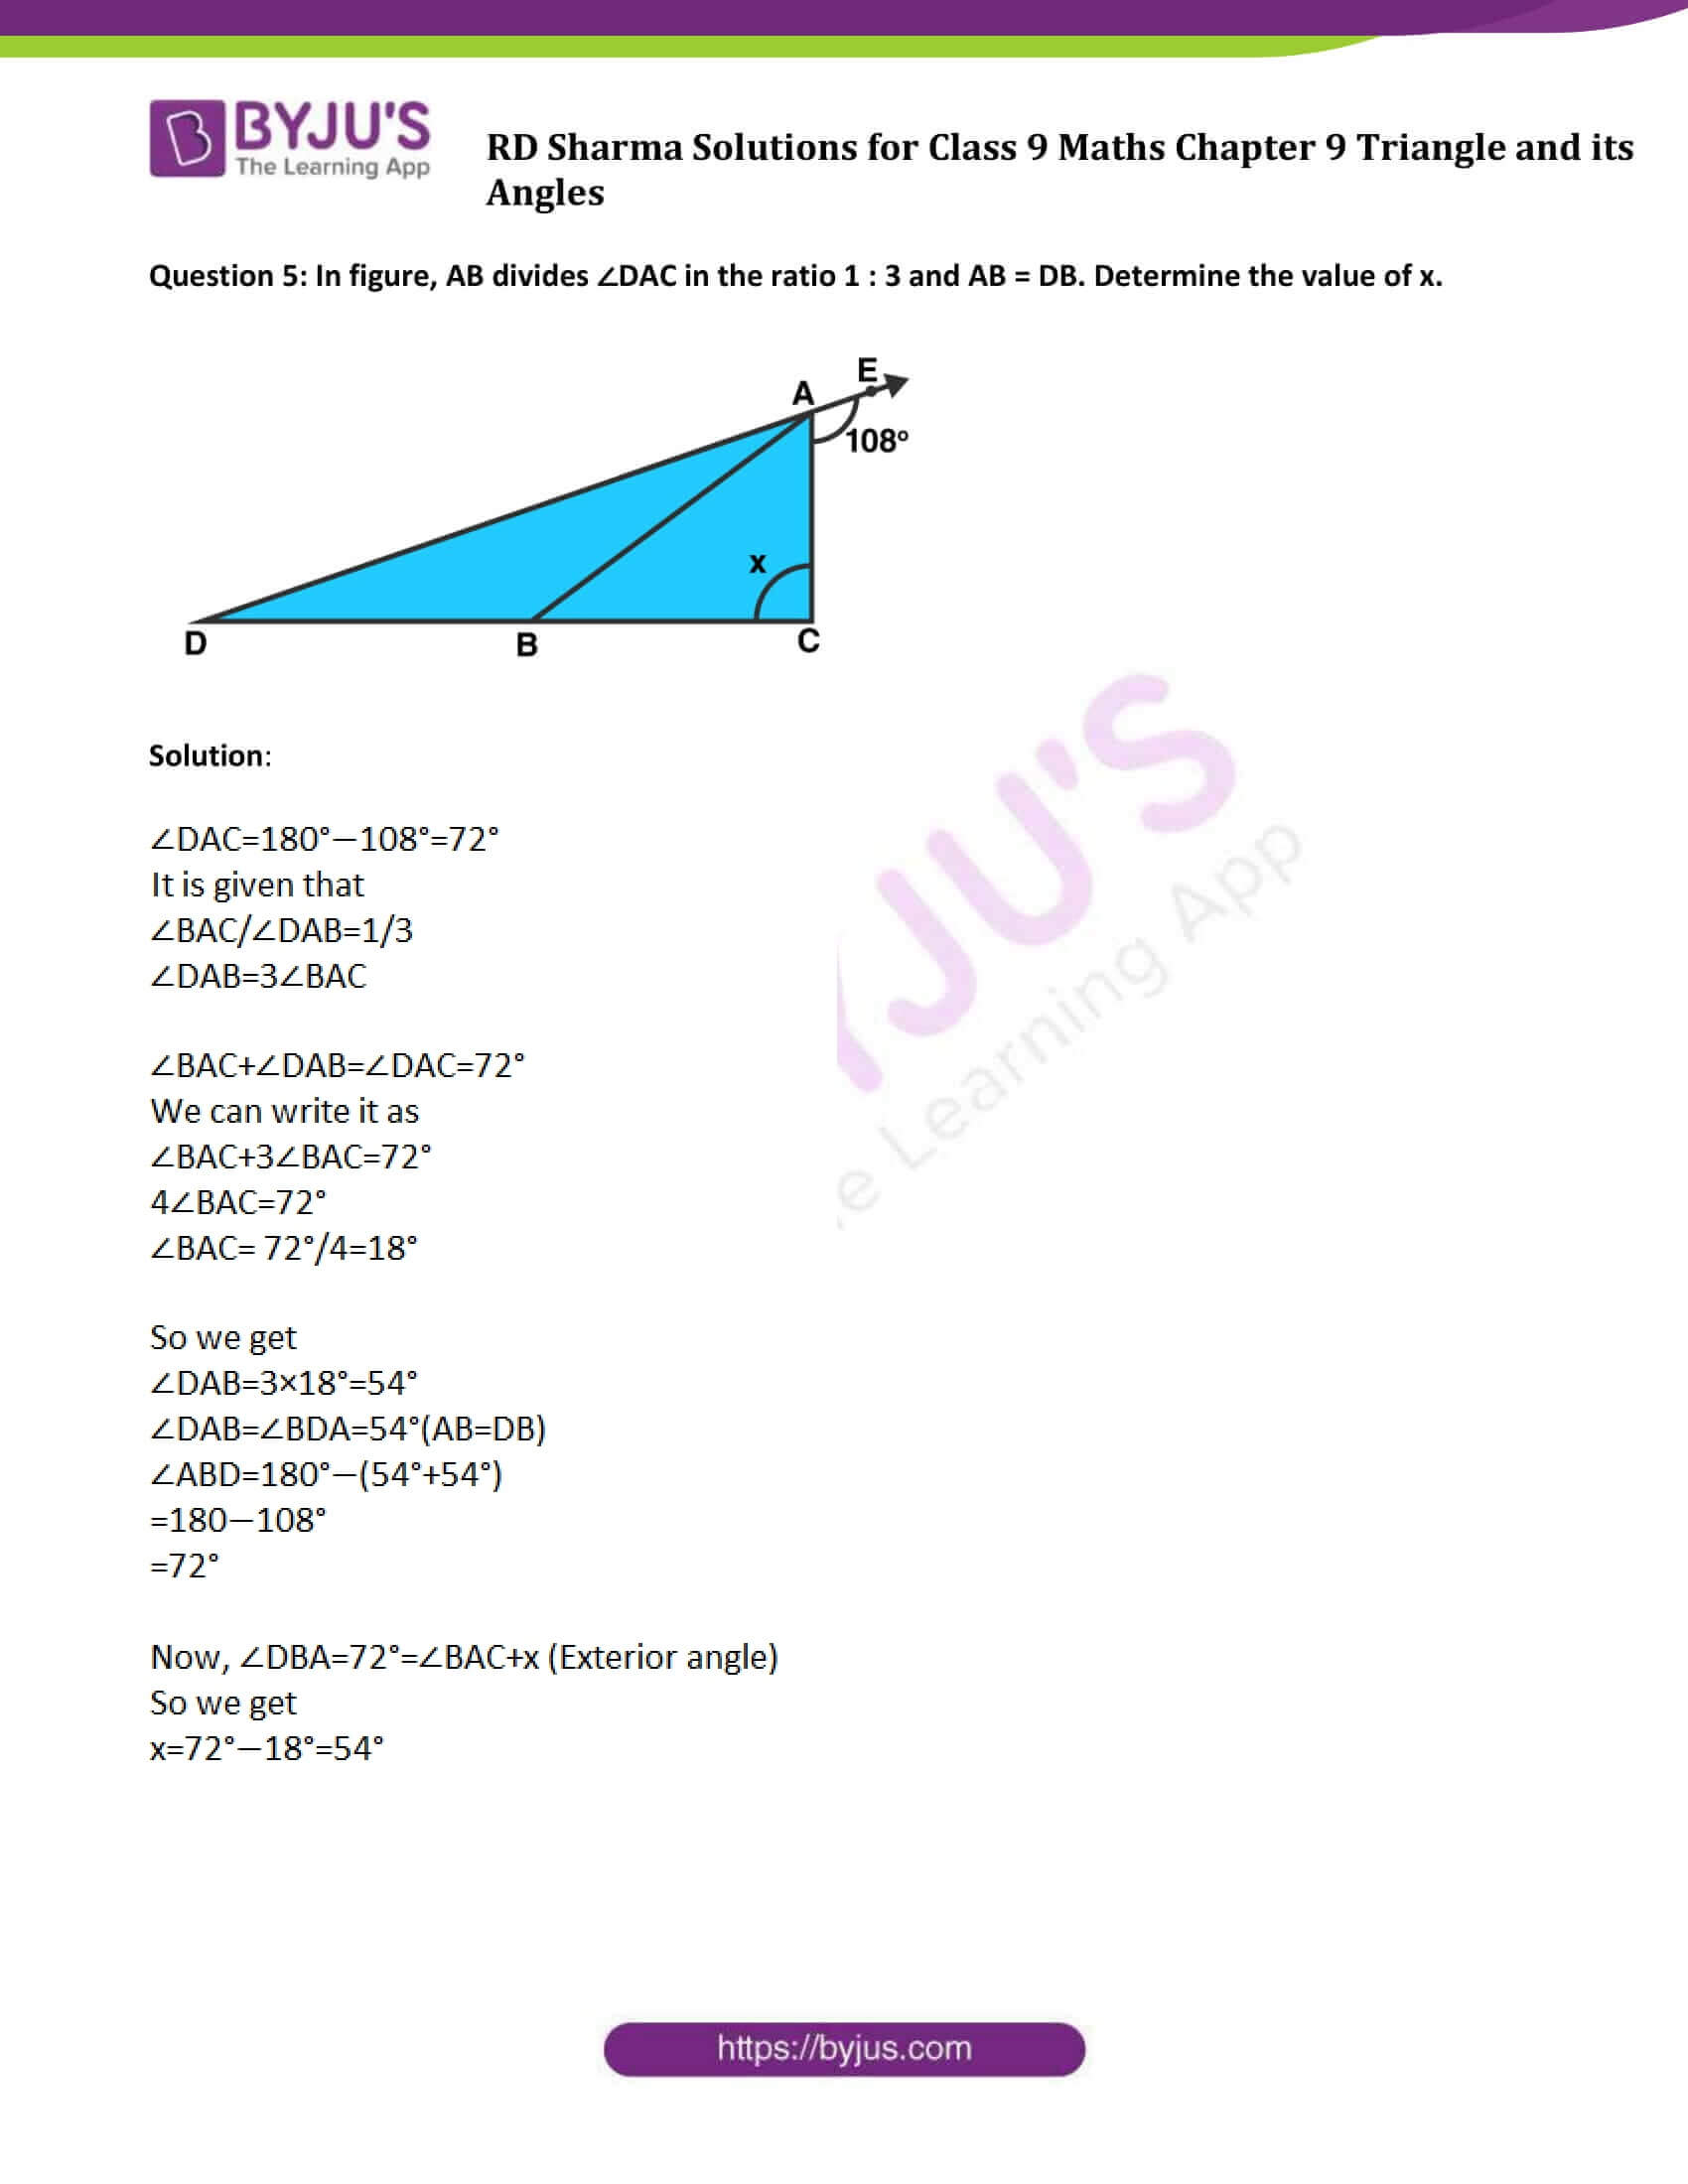 RD Sharma Solution class 9 Maths Chapter 9 Triangle and its Angles 10